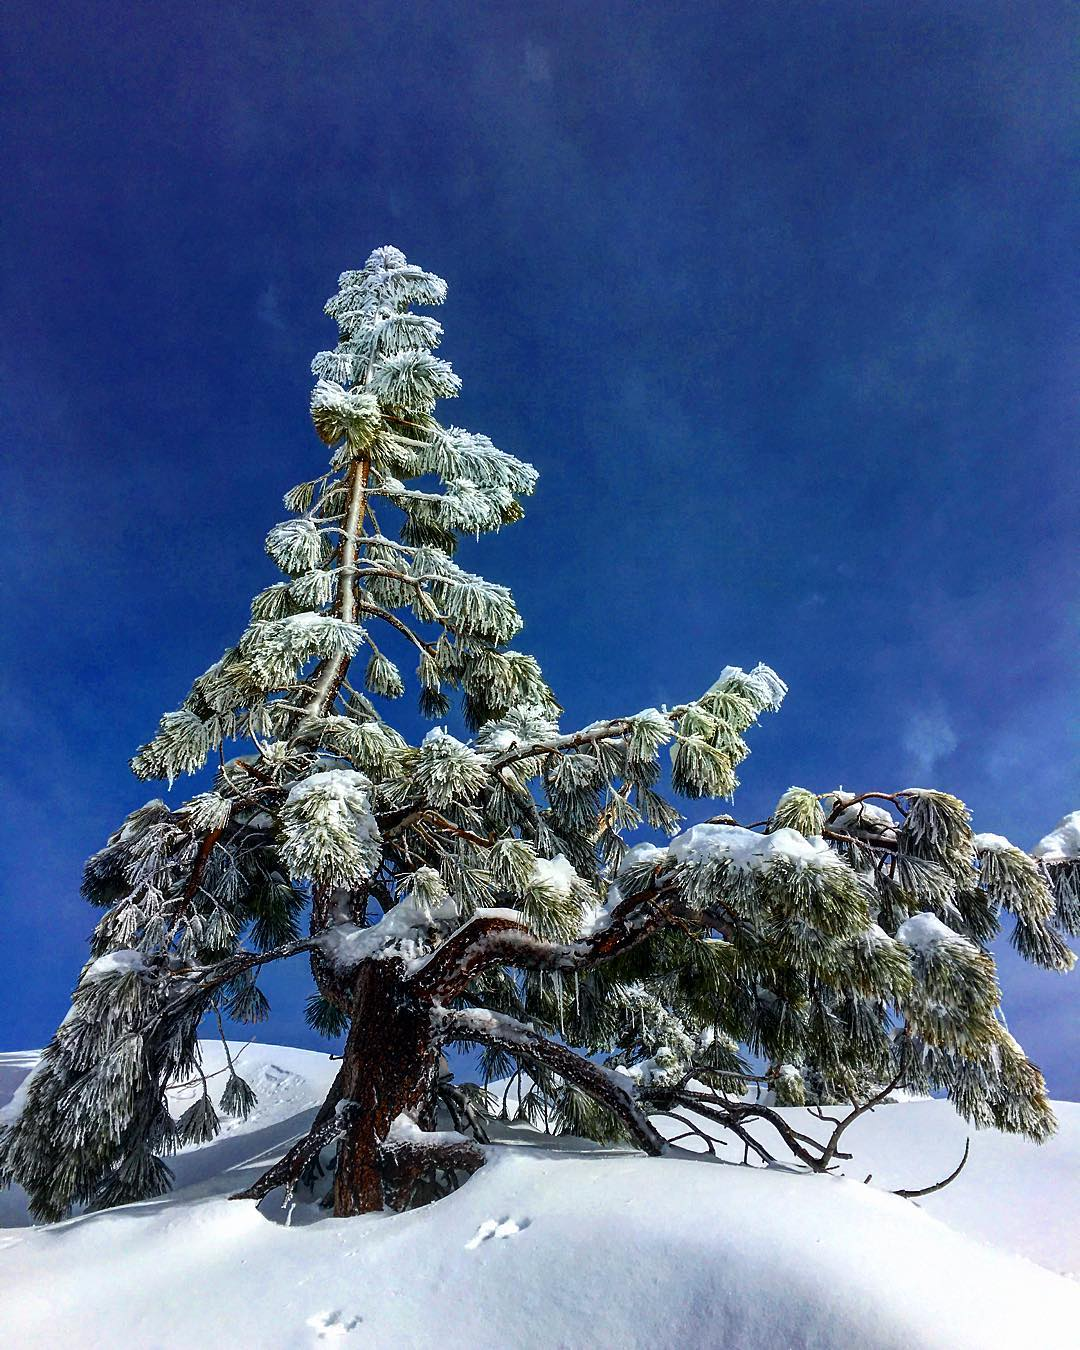 Tahoe trees. #inspiredbynature #drivenbydesign #risedesigns #risedesignstahoe #tahoebackcountry